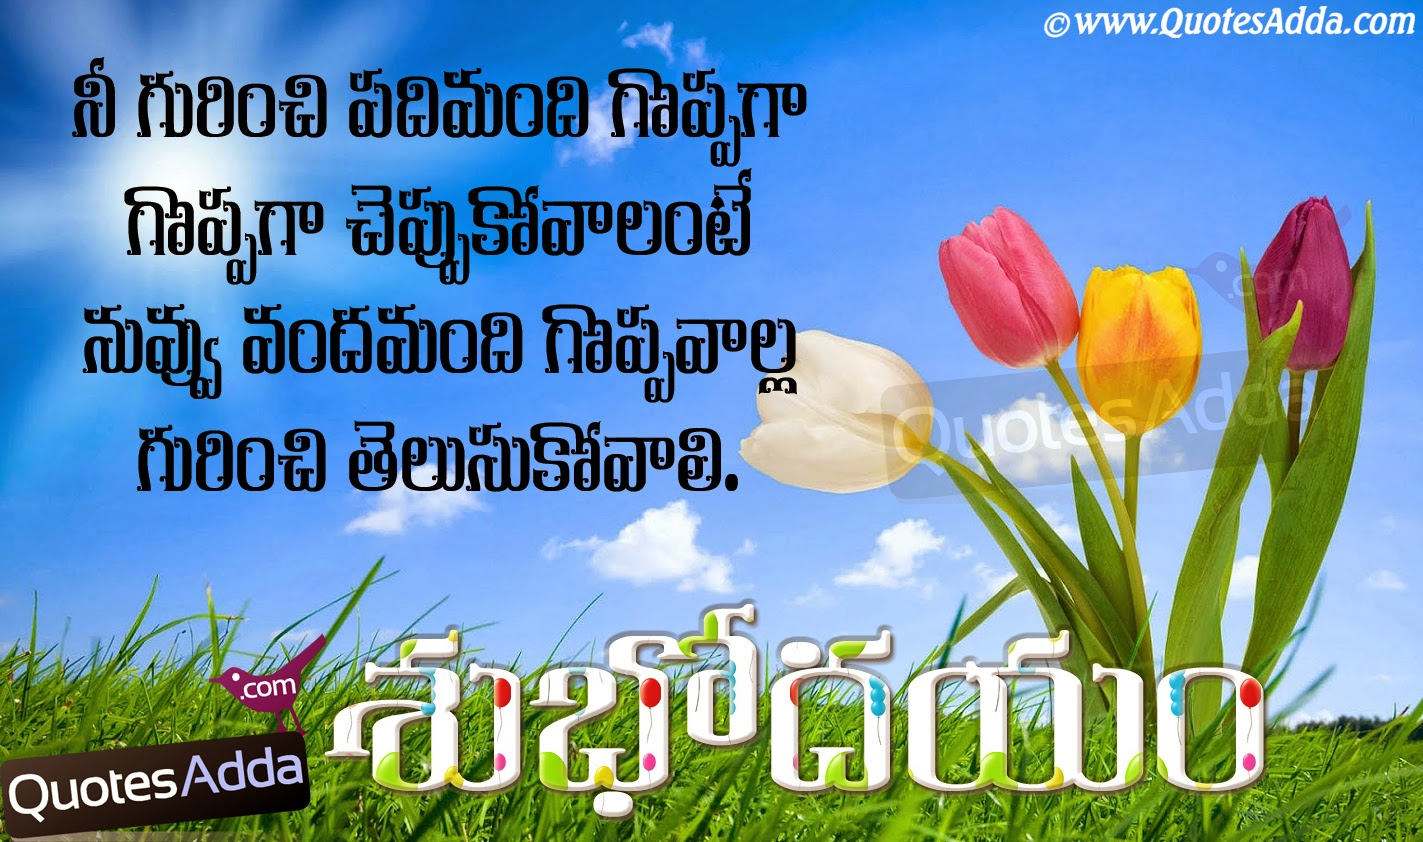 Telugu Good Morning Thoughts | QuotesAdda.com | Telugu Quotes ...